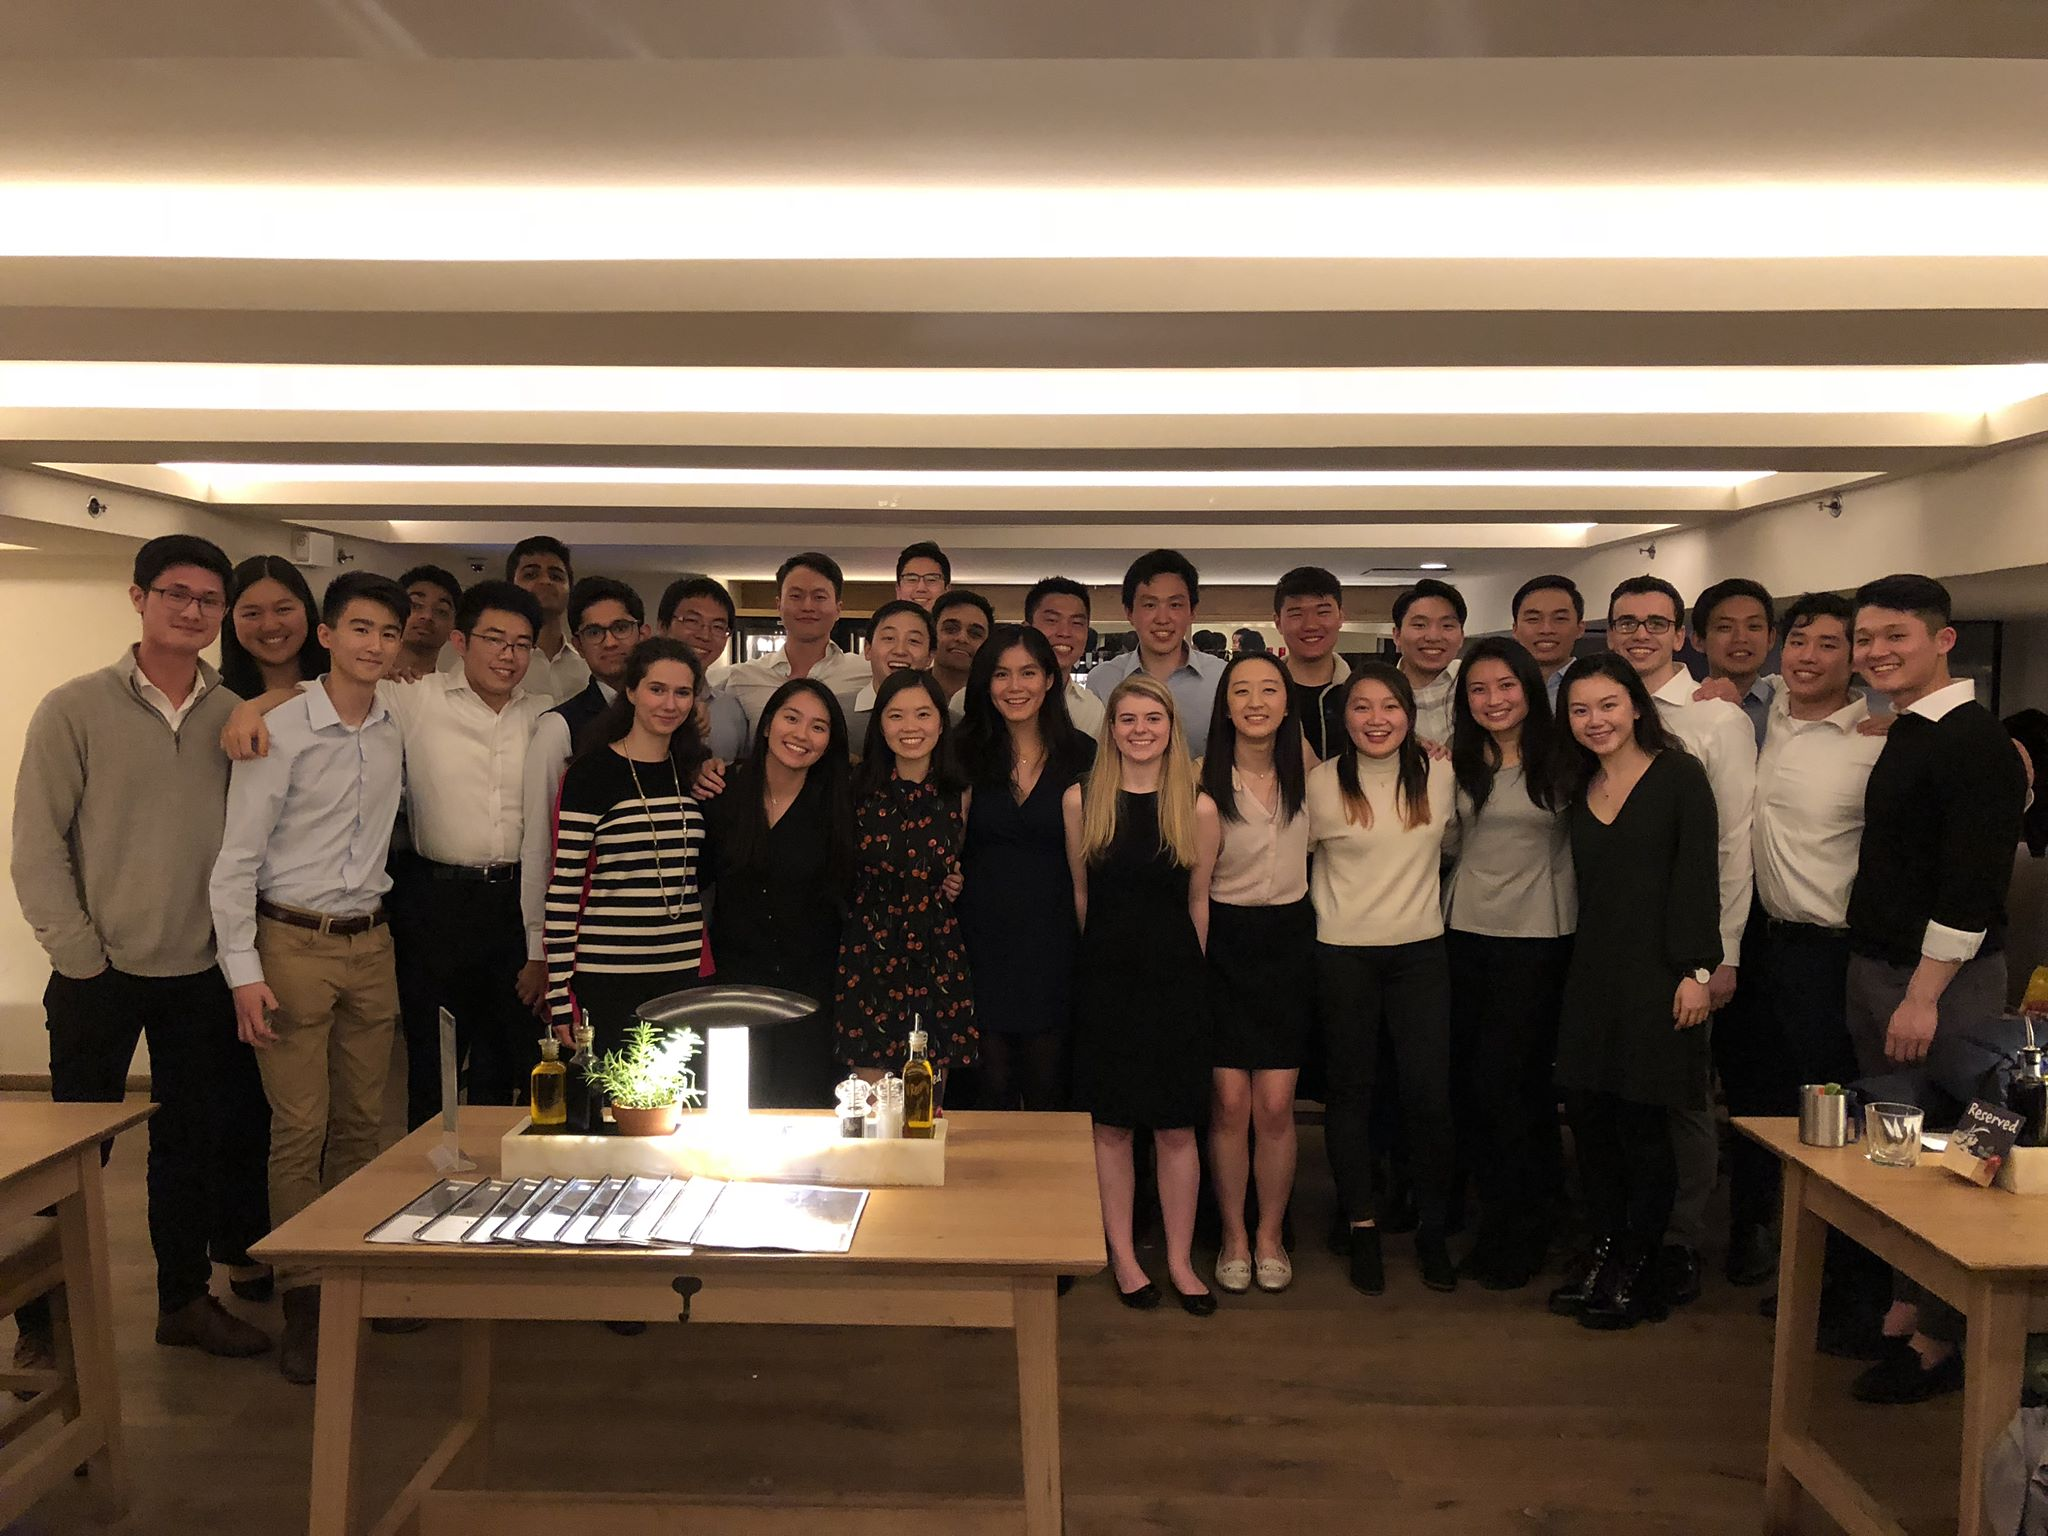 Back row, left to right:  Ethan Lin ('21), Melissa Zhang ('21), Kartik Nalamalapu ('22), Kartikay Sharma ('22), Josh Seol ('19)  Middle row, left to right:  Kevin Ho ('21), Weiting Hong ('22), Siddharth Tripathi ('22), Howie Shen ('21), SK Ra ('19), Jonathan Zhao ('21), Varun Bhardwaj ('21), Edward Hu ('19), Travis Liu ('20), Bill Shen ('19), Vincent Cao ('20), Aidan Lee ('20), Andrew Chanin ('21), Kevin Cao ('21), Matthew Zhang ('21), David Moon ('20)  Front row, left to right:  Michelle Rozelman ('22), Jessica Chen ('21), Jacqueline Huang ('19), Natasha Lim ('19), Mimi Markham ('21), Ariel Kau ('21), Rebecca Wang ('20), Shirley Zhan ('20), Sara Liu ('22)   Not pictured:  Janet Huang ('22), Mike Zhang ('20)